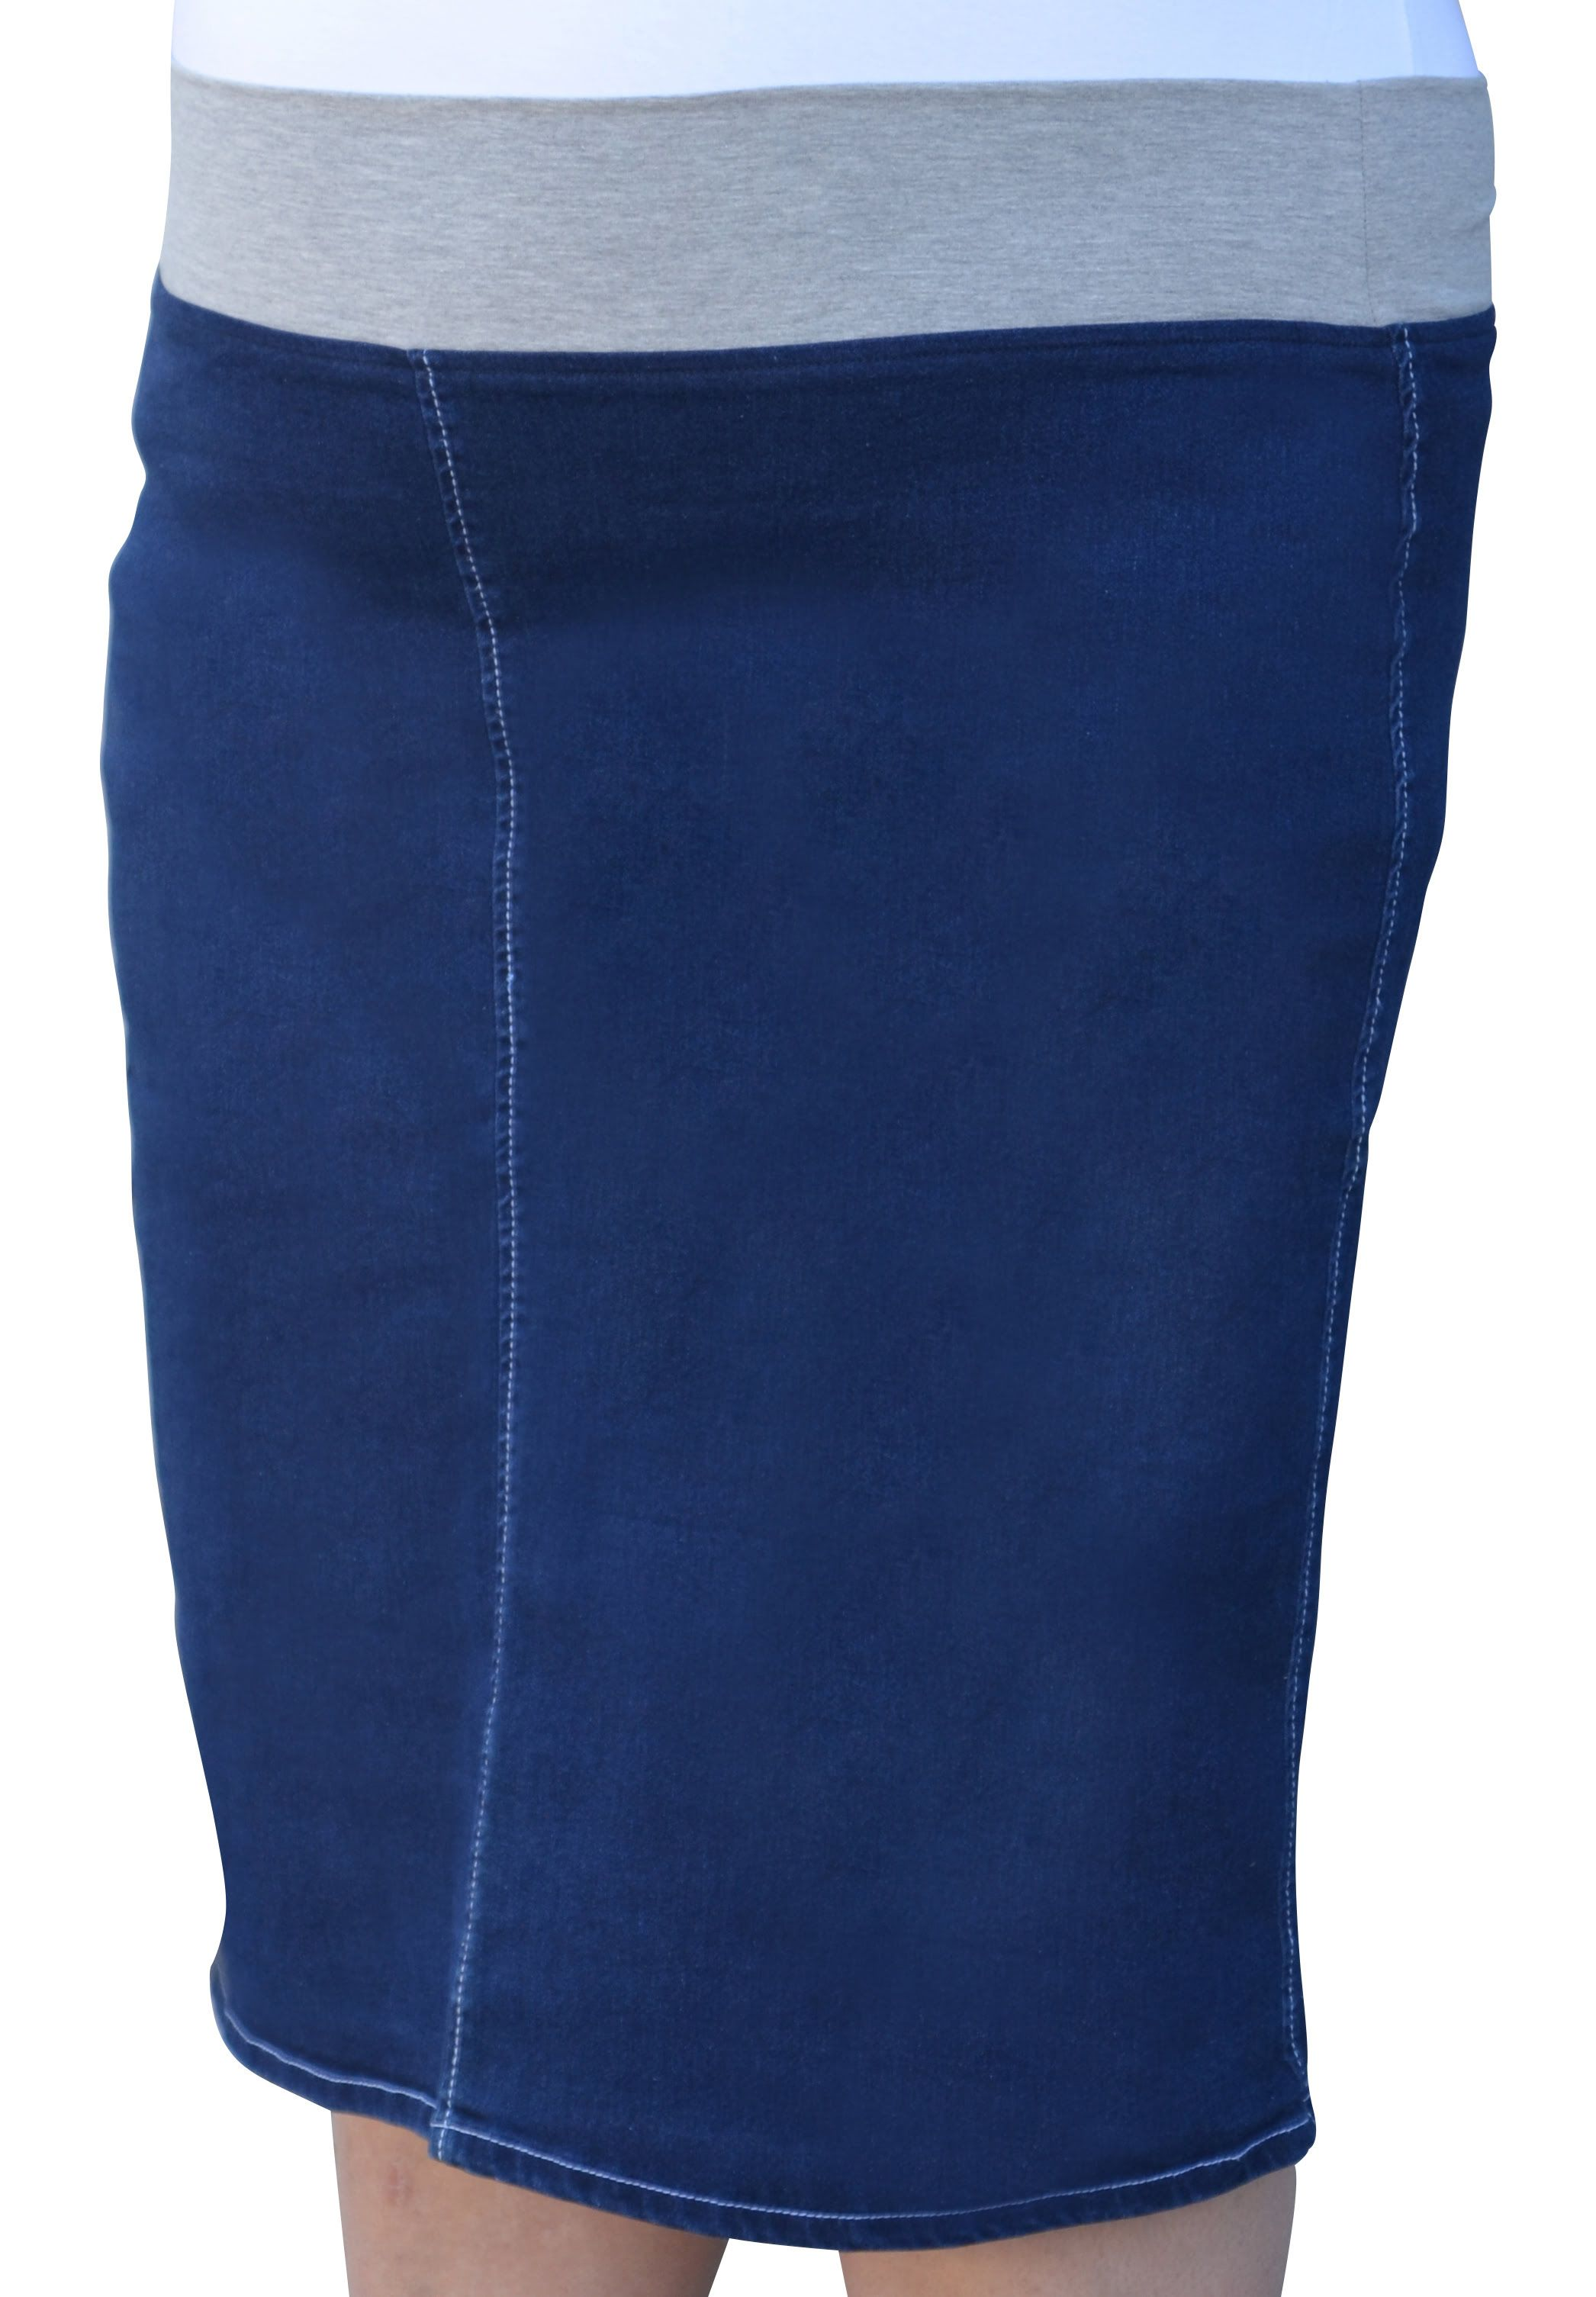 07ae0ca7d8 Women's Straight Knee Length Denim Skirt with Stretch Waistband Plus Size